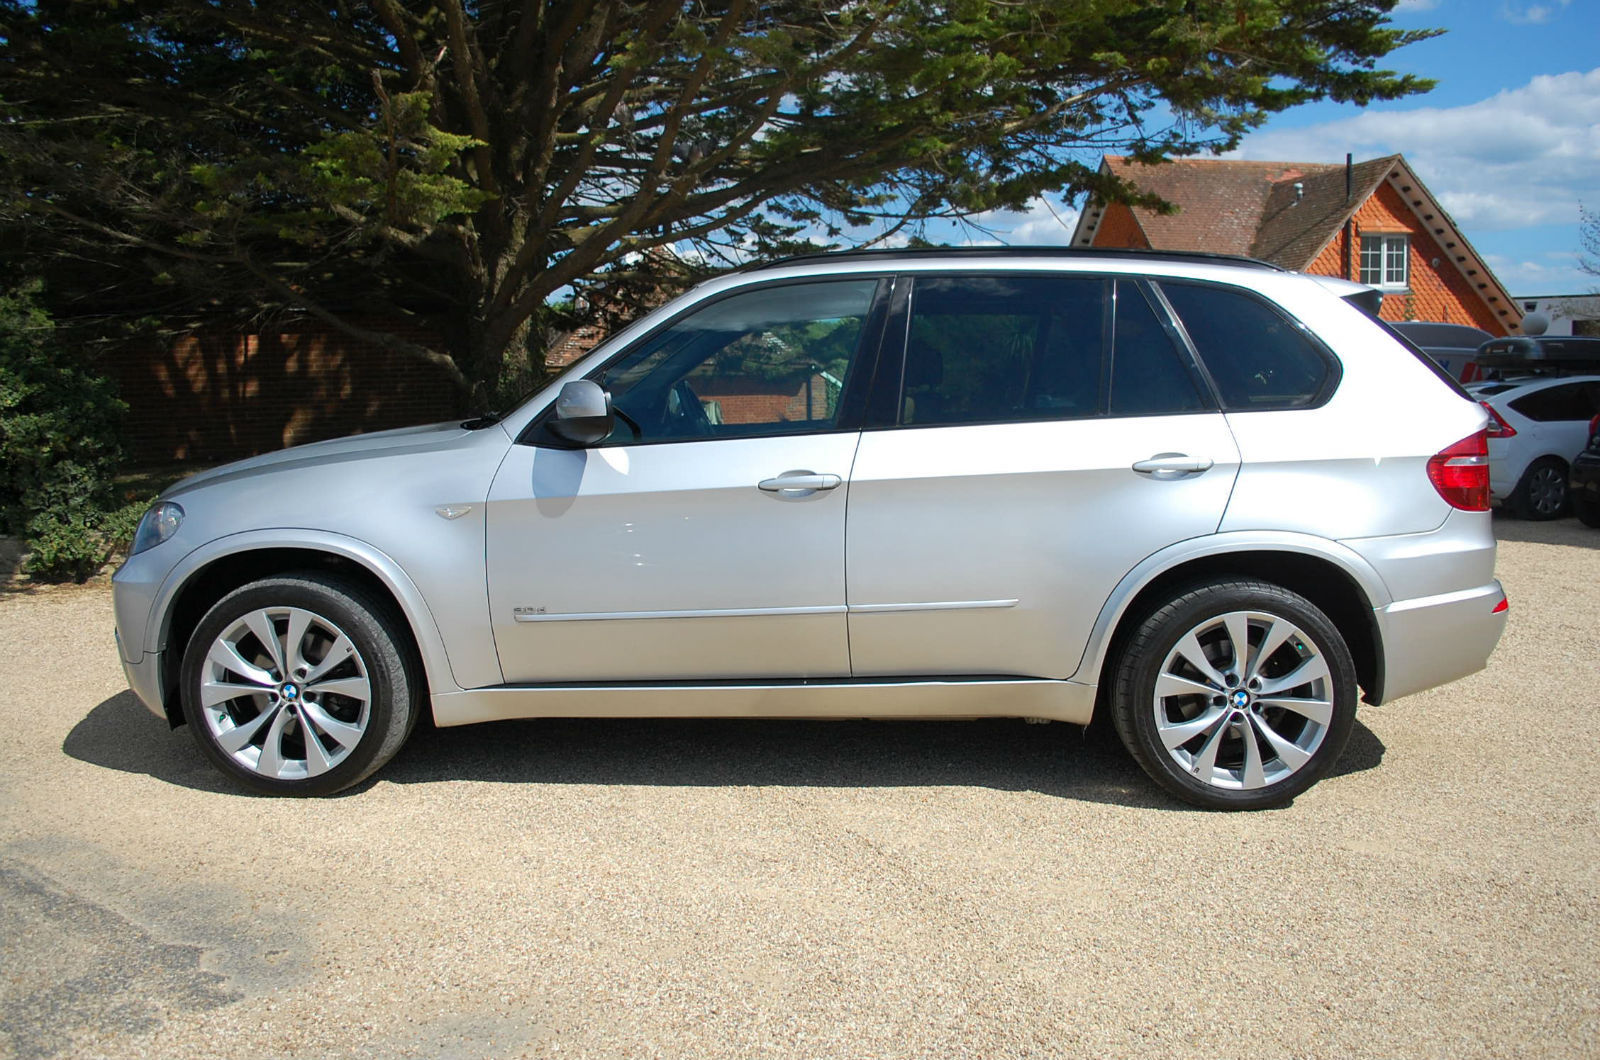 BMW X5 3.0 D 2993 from private